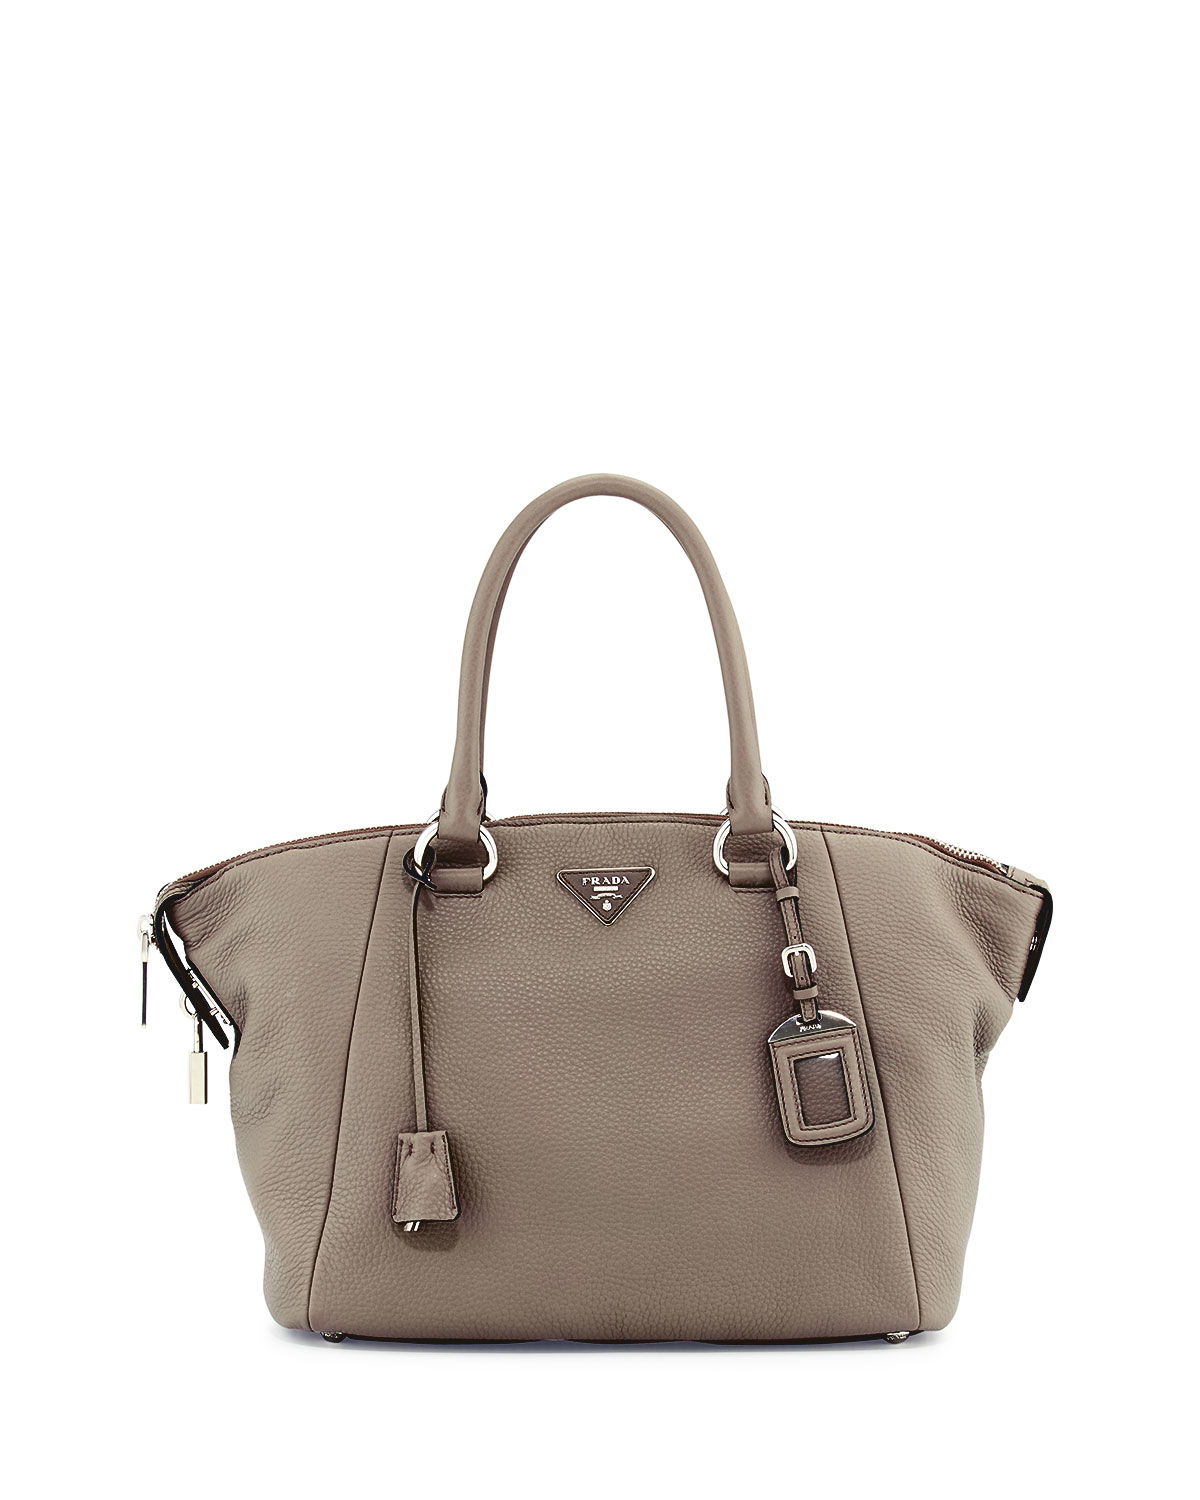 2f03ffb5579c Prada Vitello Daino Satchel Bag